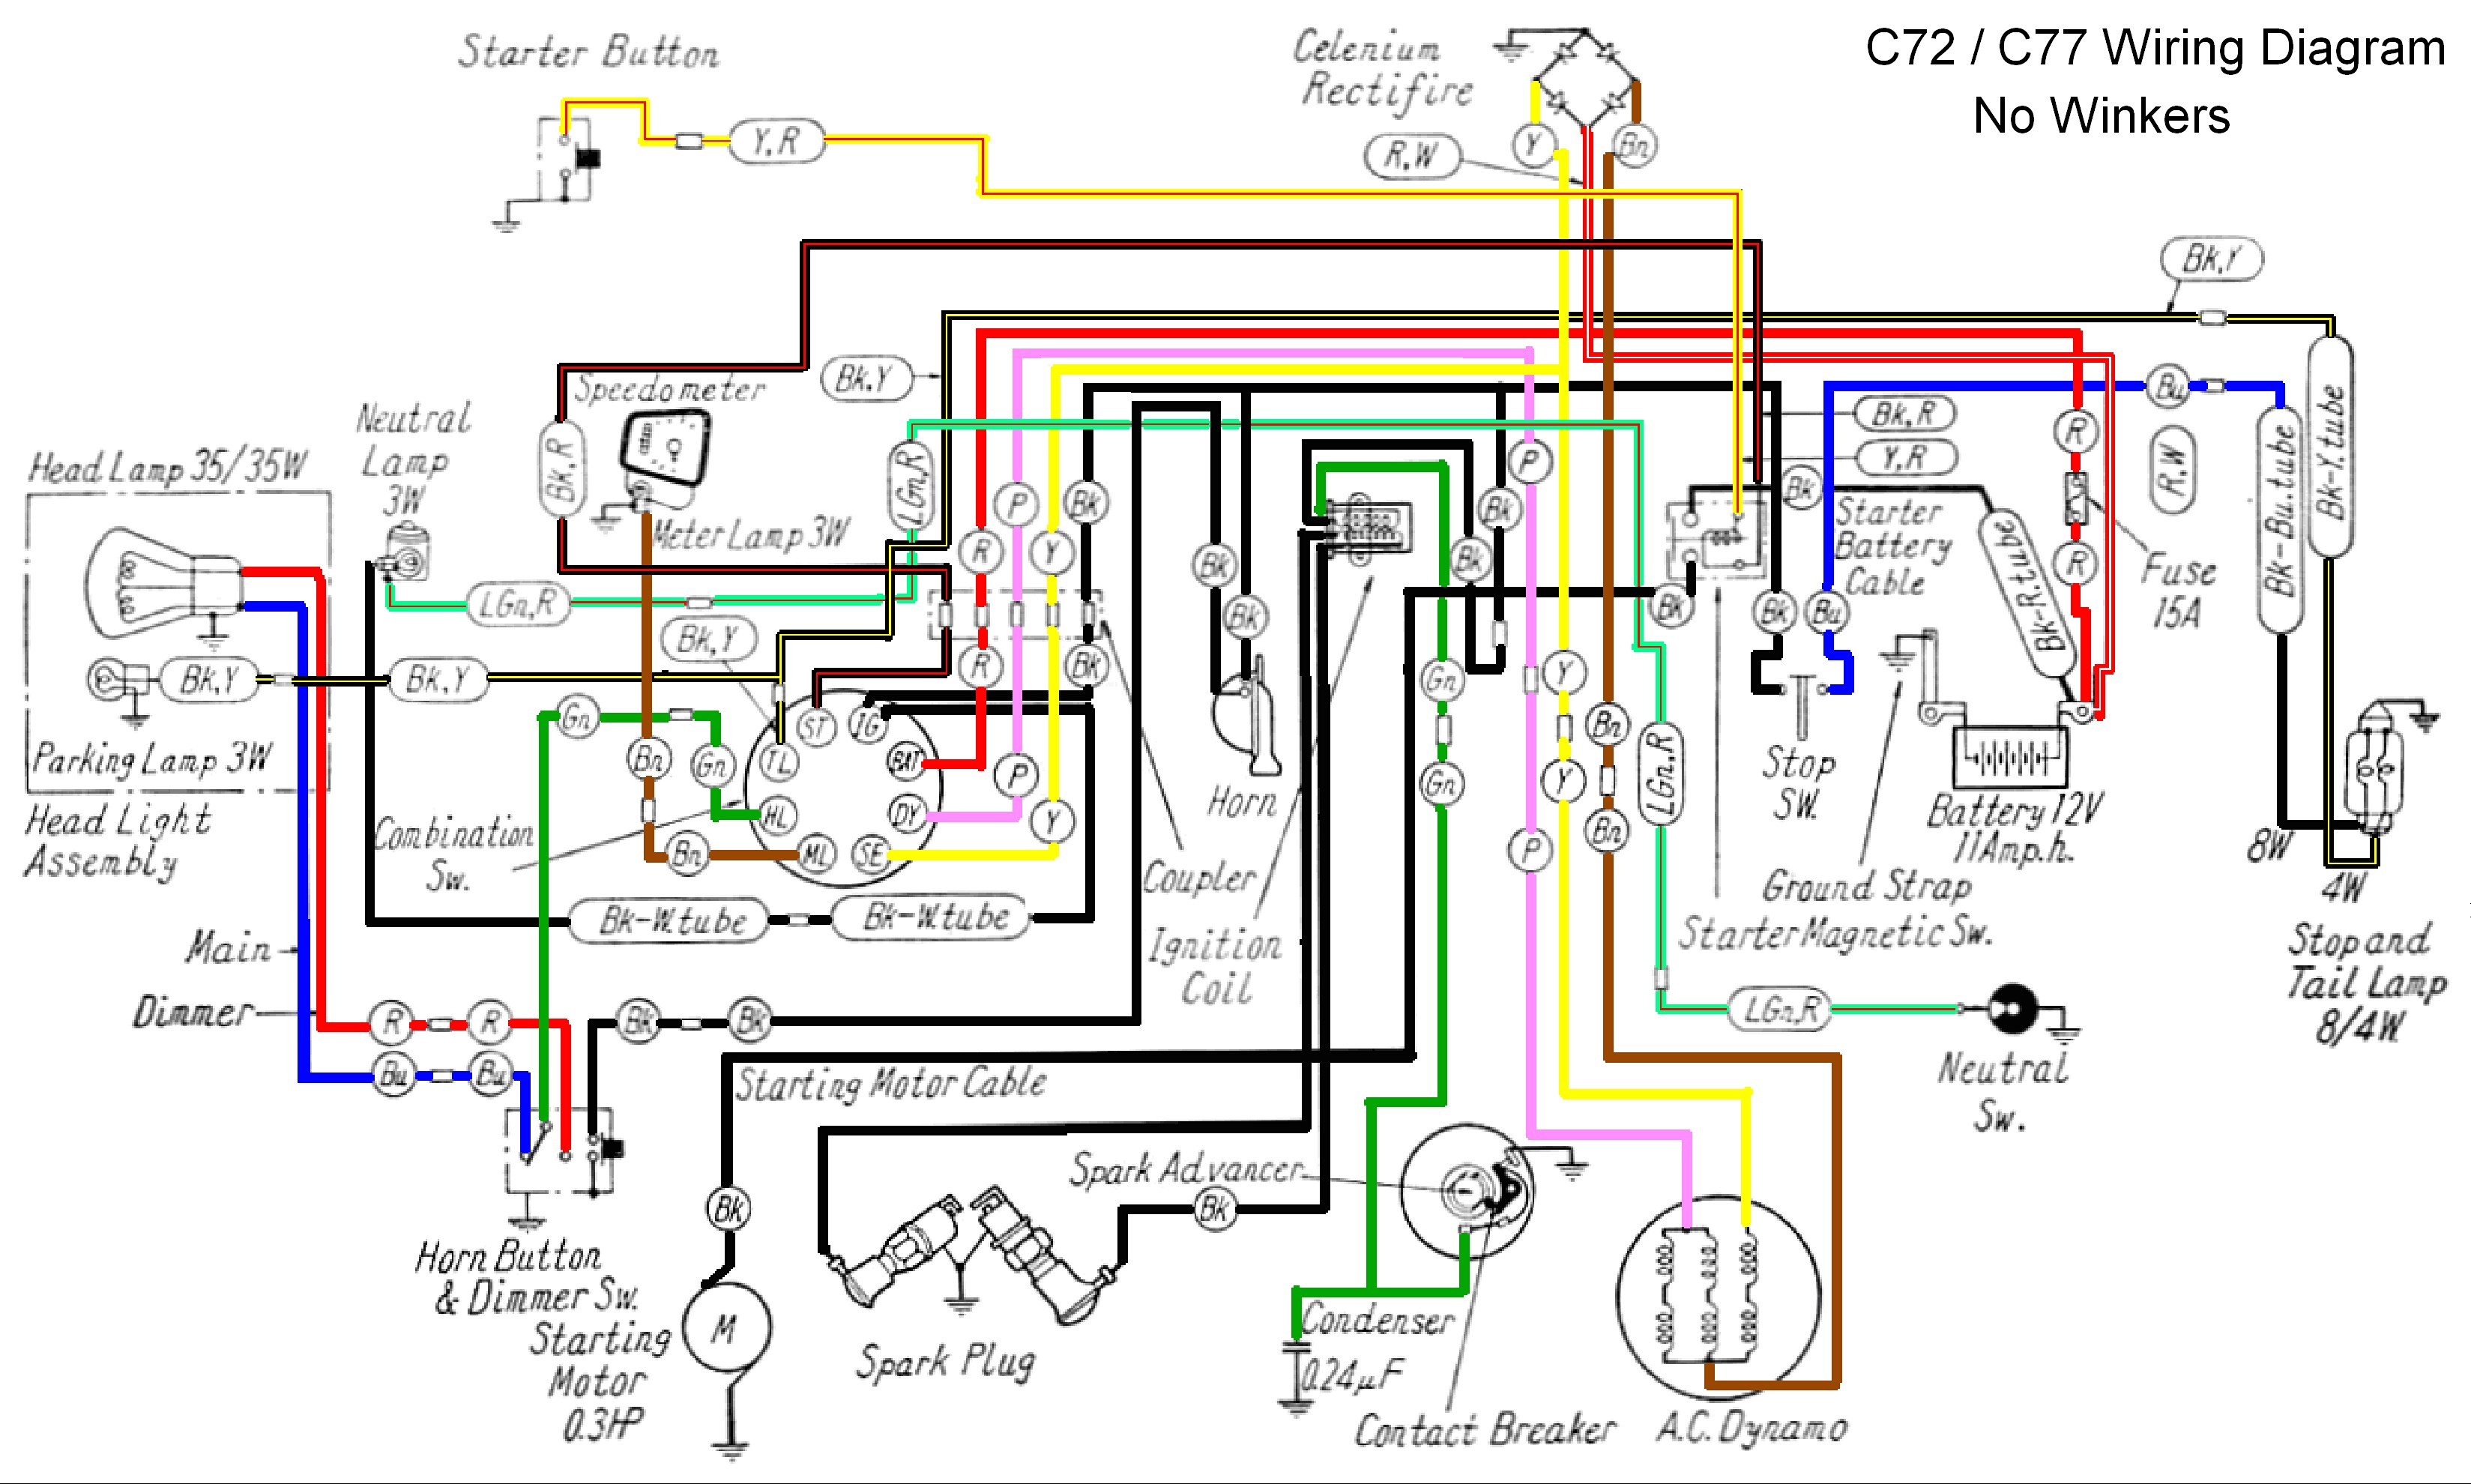 Simple Chopper Wiring Diagram Trusted Schematics Diagram Mini Chopper  Wiring Diagram Chopper Wiring Diagram